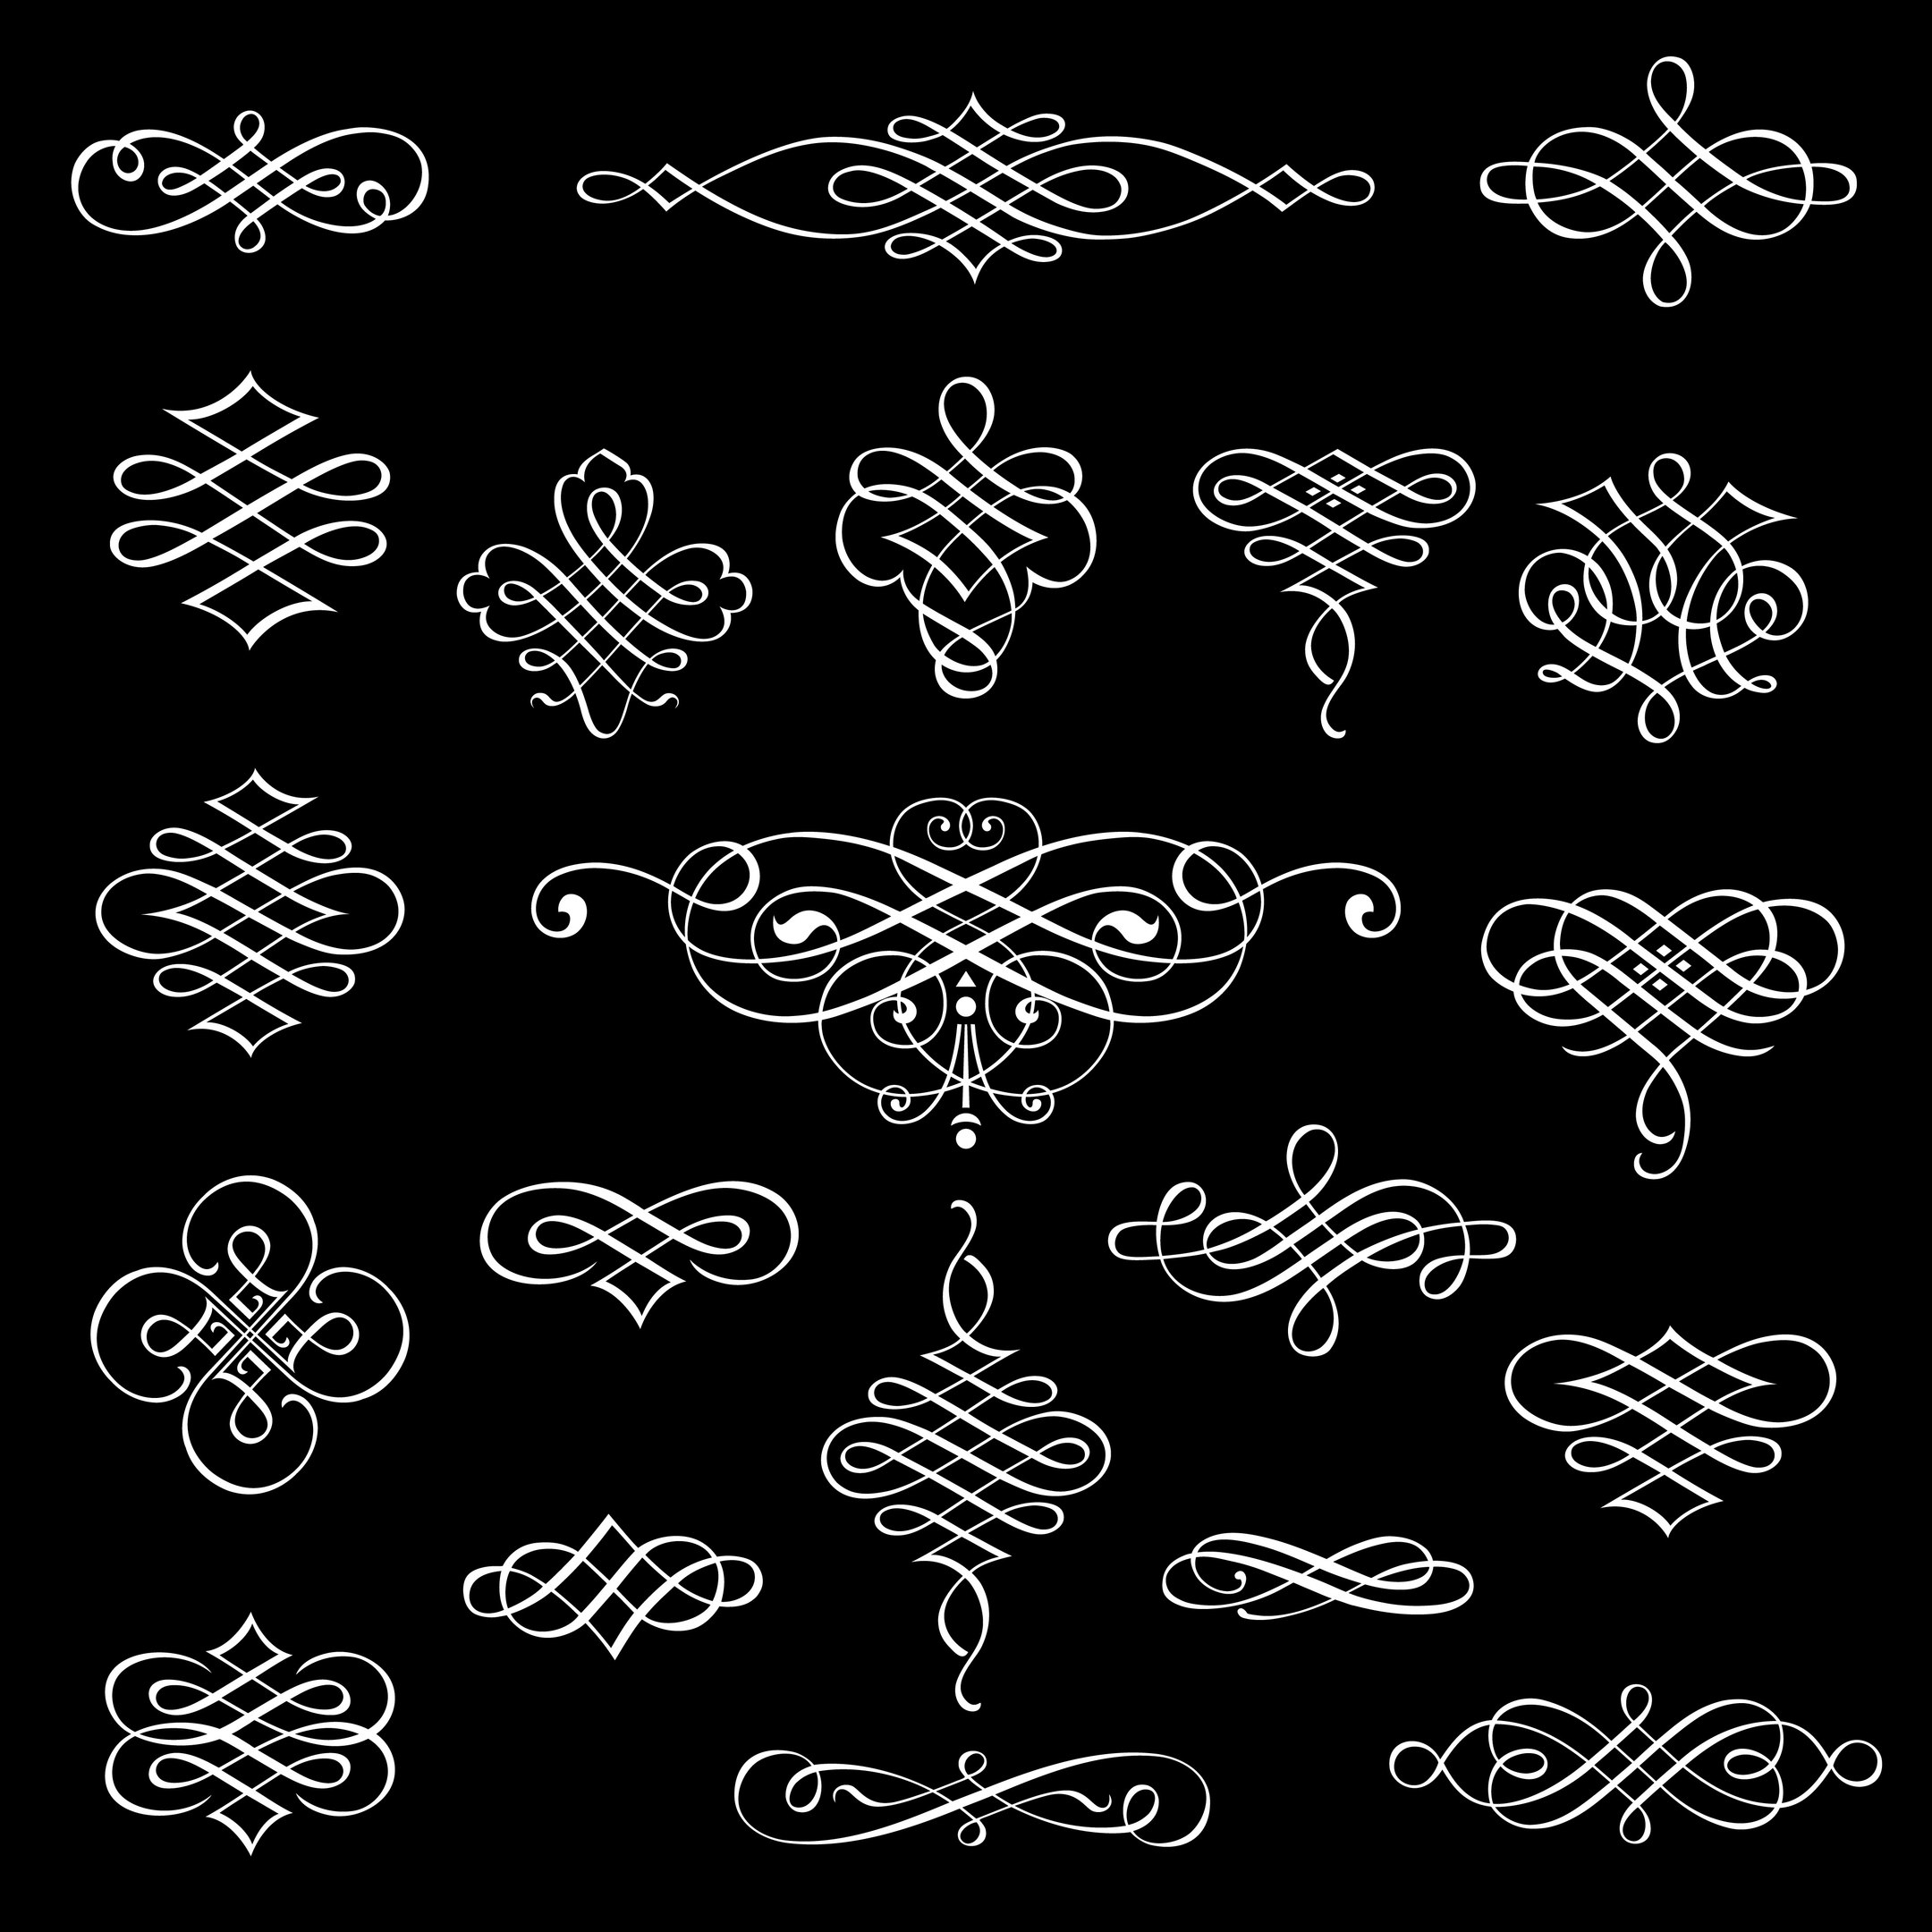 Vector Calligraphic Design Elements Isolated On Black Background Free Vector